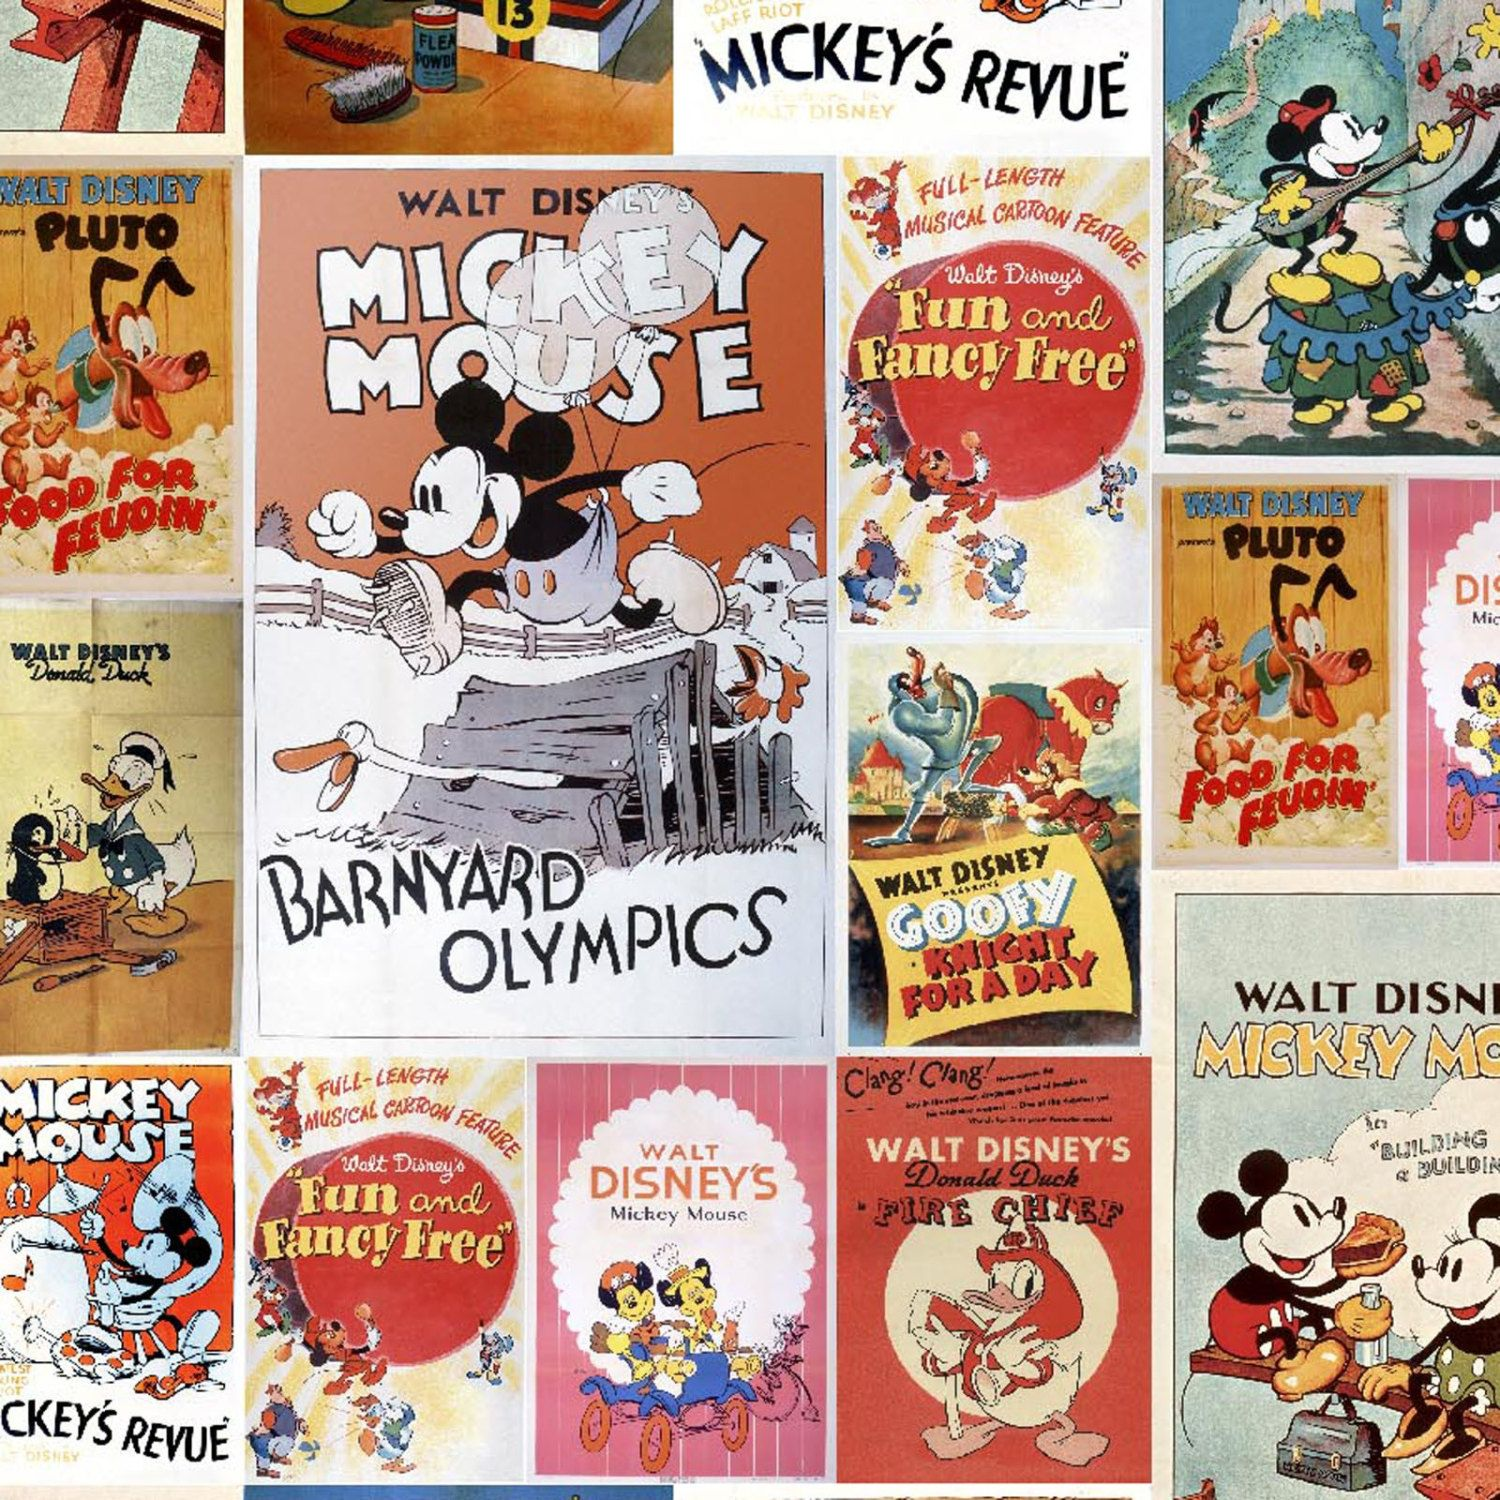 Pre Order Disney Mickey Minnie Comics Woven Cotton Fabric 1 Yard Vintage Disney Posters Disney Fabric Mickey Mouse And Friends